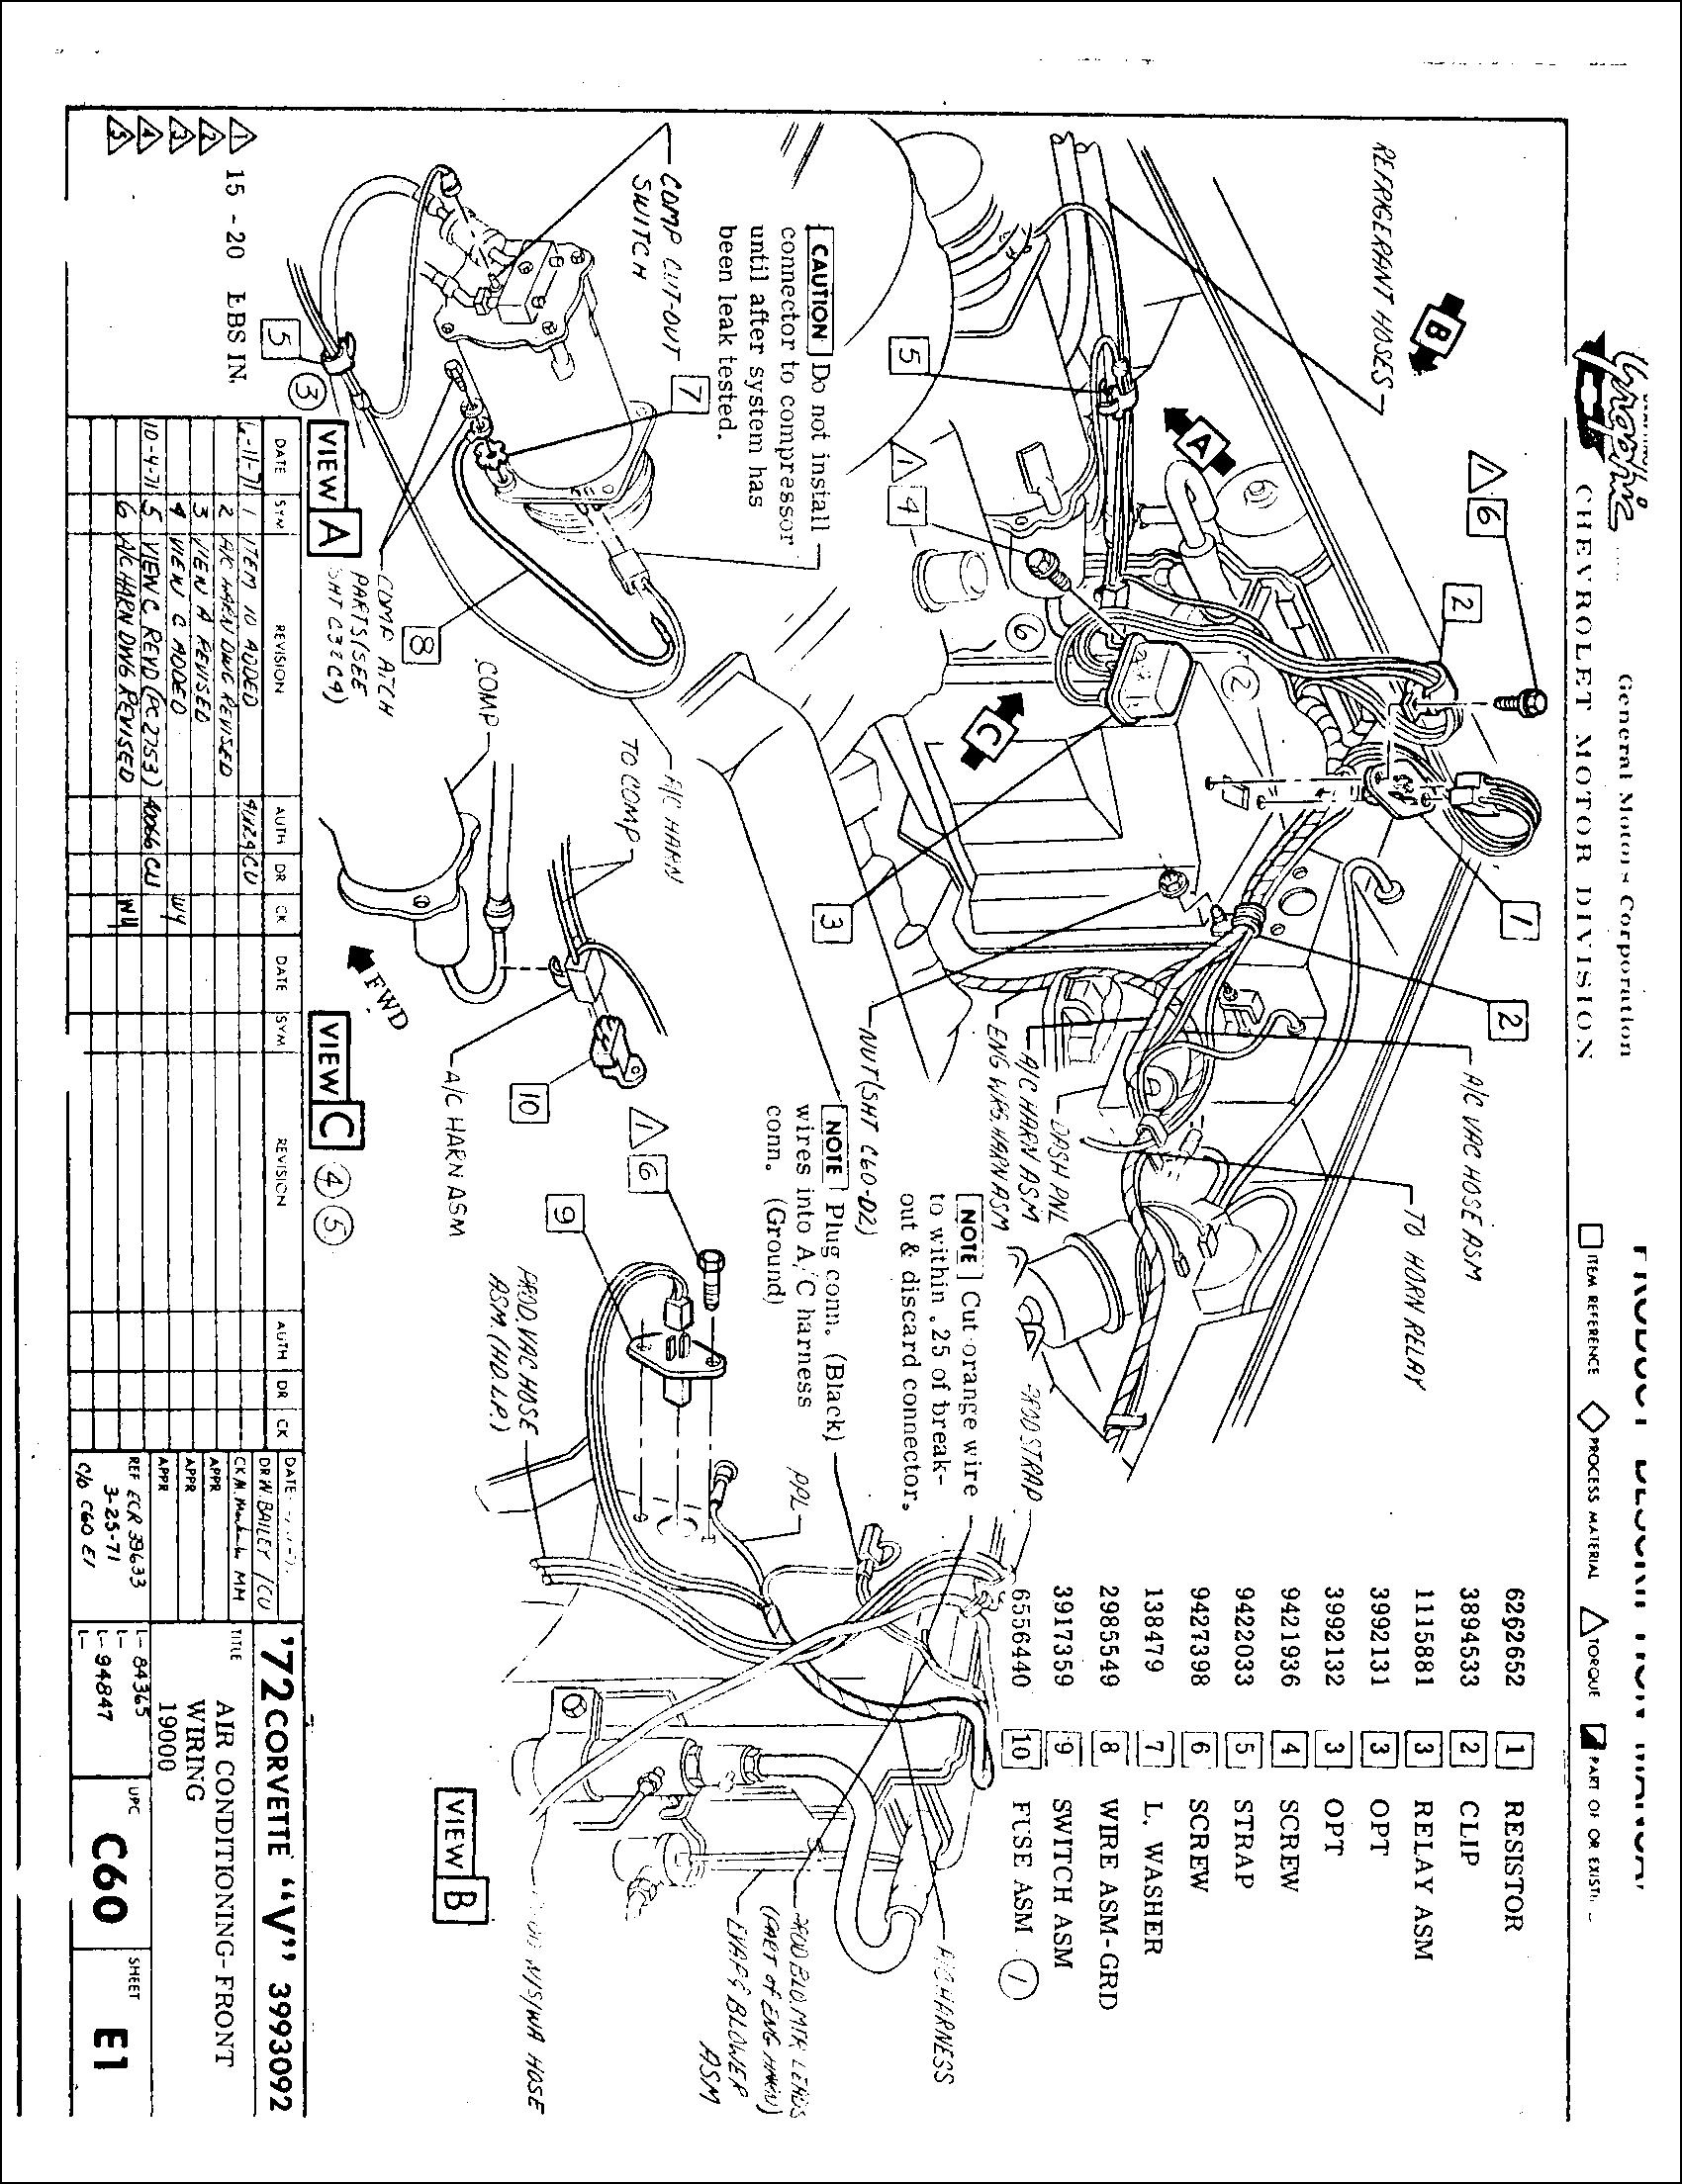 1968 camaro wiring diagram online labled of the eye get free image